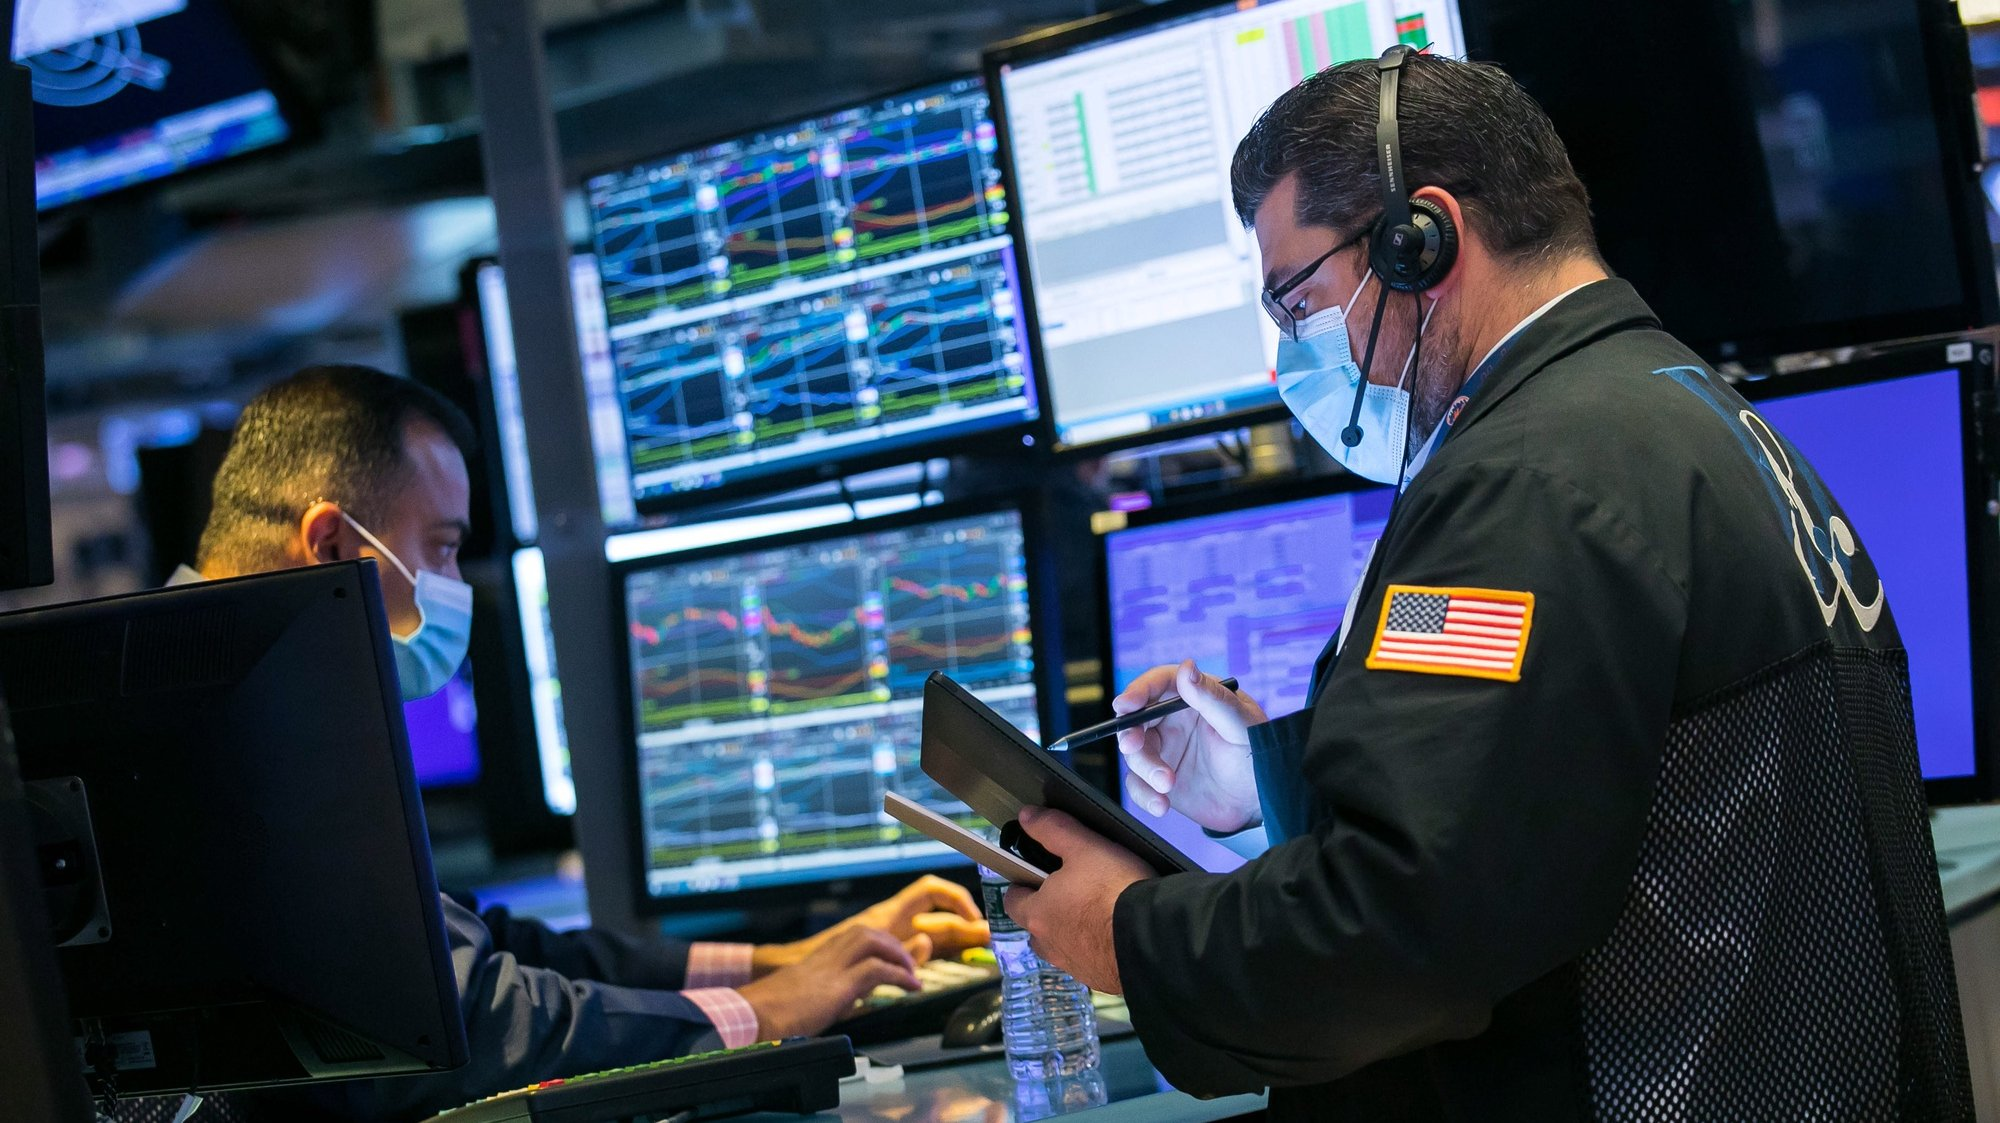 epa08798733 A handout photo made available by the New York Stock Exchange (NYSE), showing  traders working at the New York Stock Exchange (NYSE) on 04 November 2020, while the US presidential election awaits a final result. The 2020 Presidential Election result remains undetermined as votes continued to be counted in several key battleground states.  EPA/COURTNEY CROW HANDOUT  HANDOUT EDITORIAL USE ONLY/NO SALES